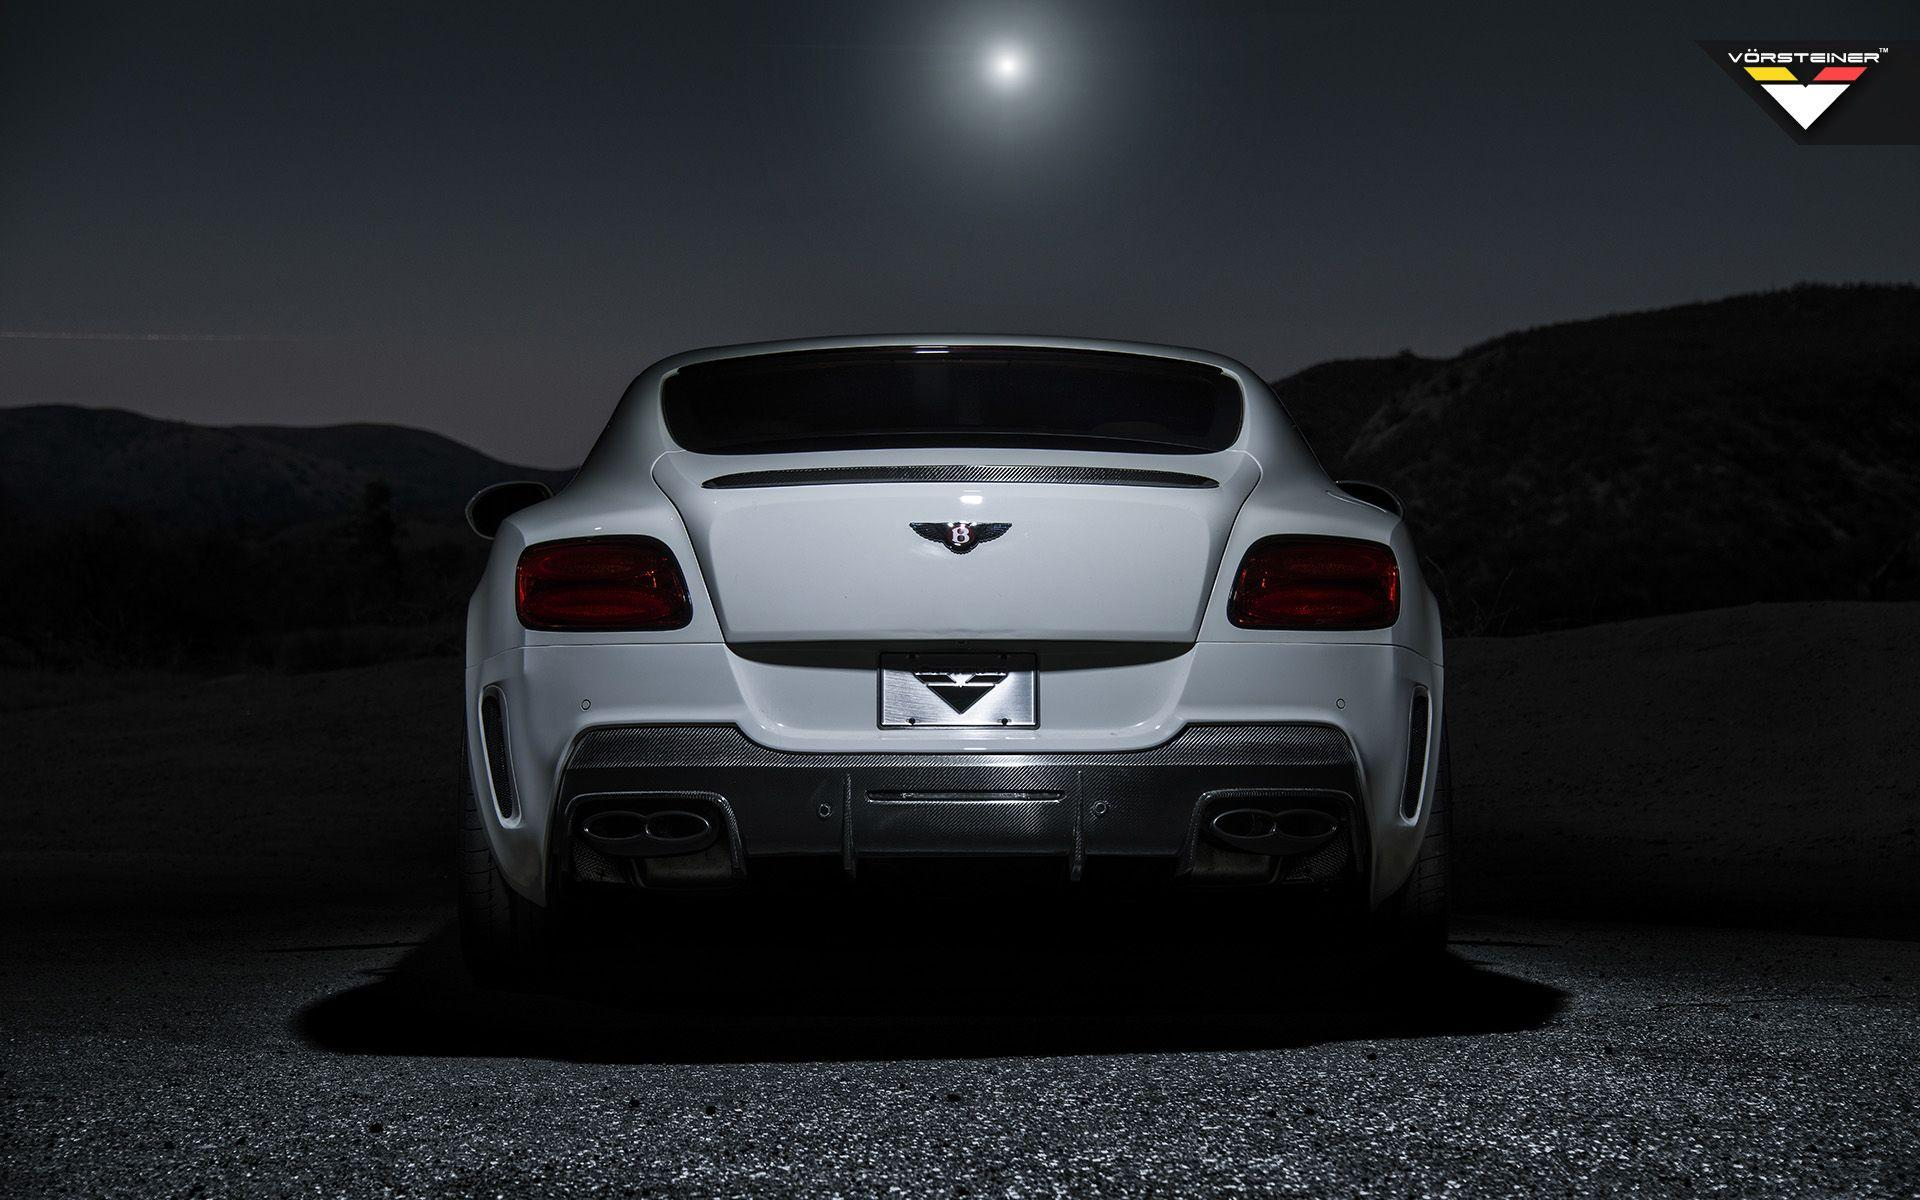 2013 Vorsteiner Bentley Continental GT BR10 RS 3 Wallpaper | HD ...